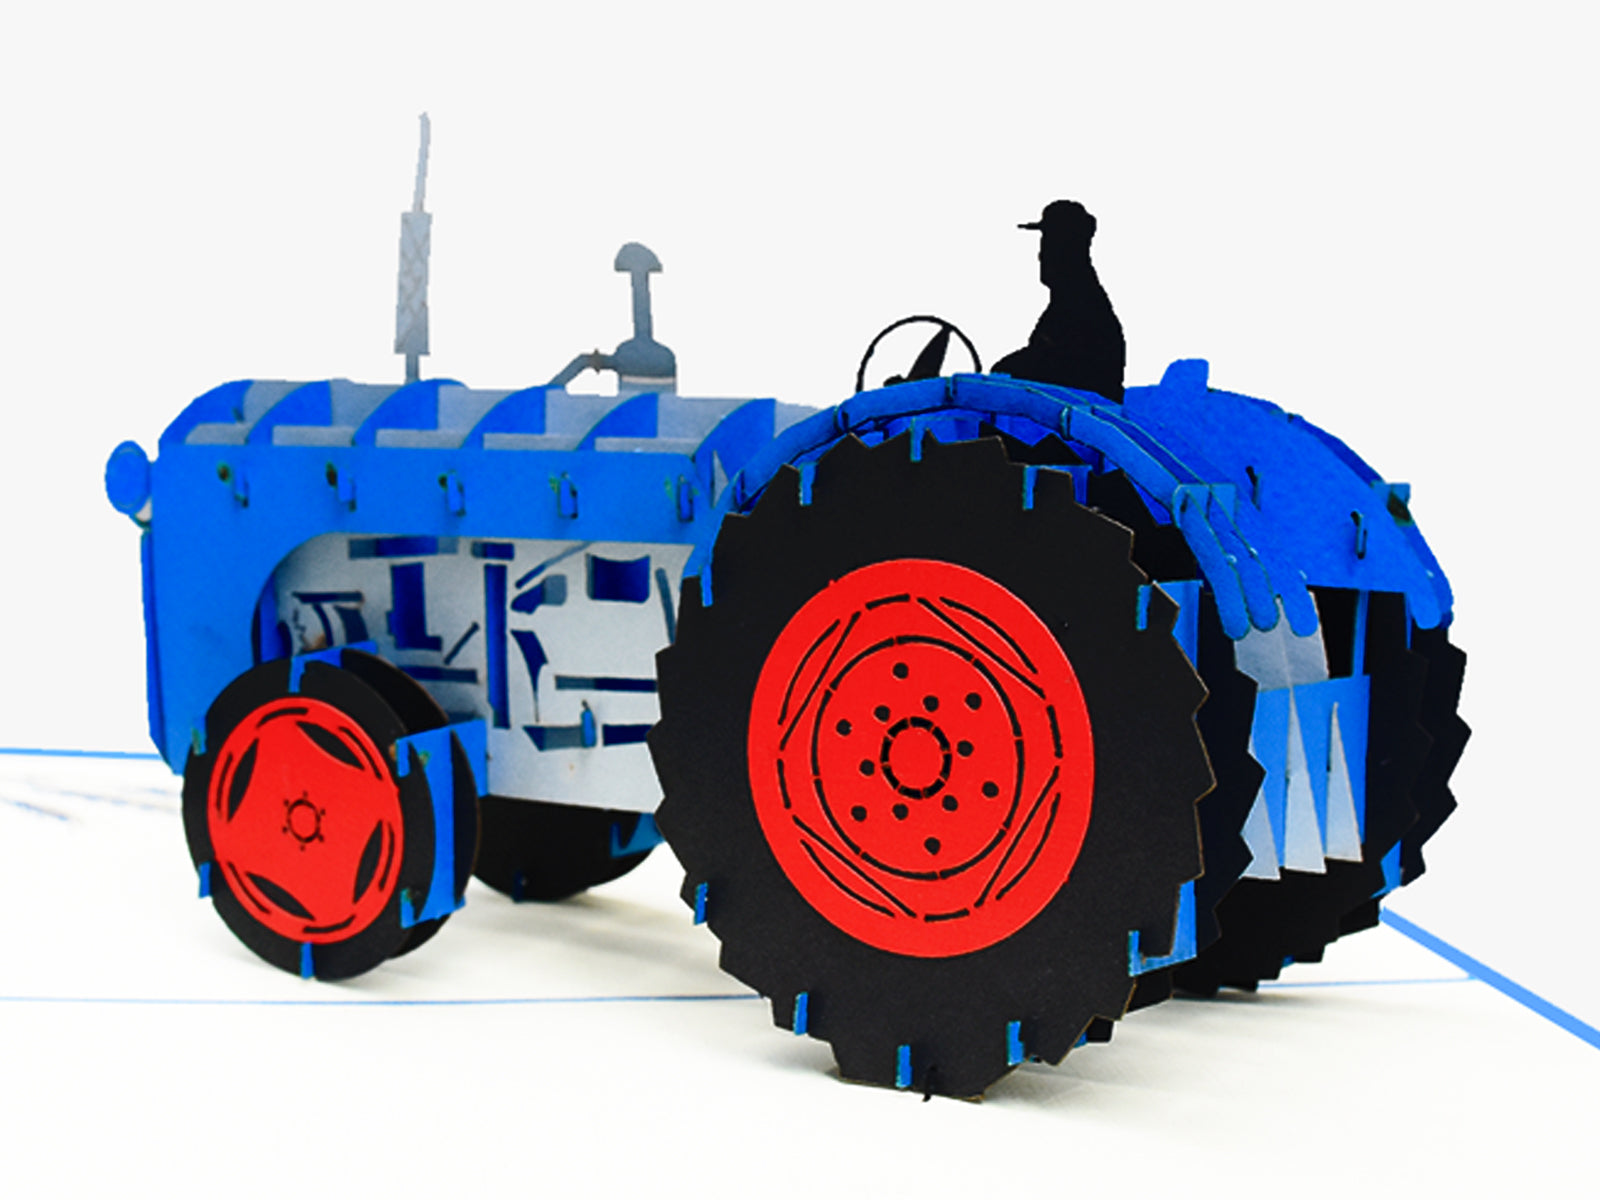 Blue Tractor 3D Creative Pop Card - close up